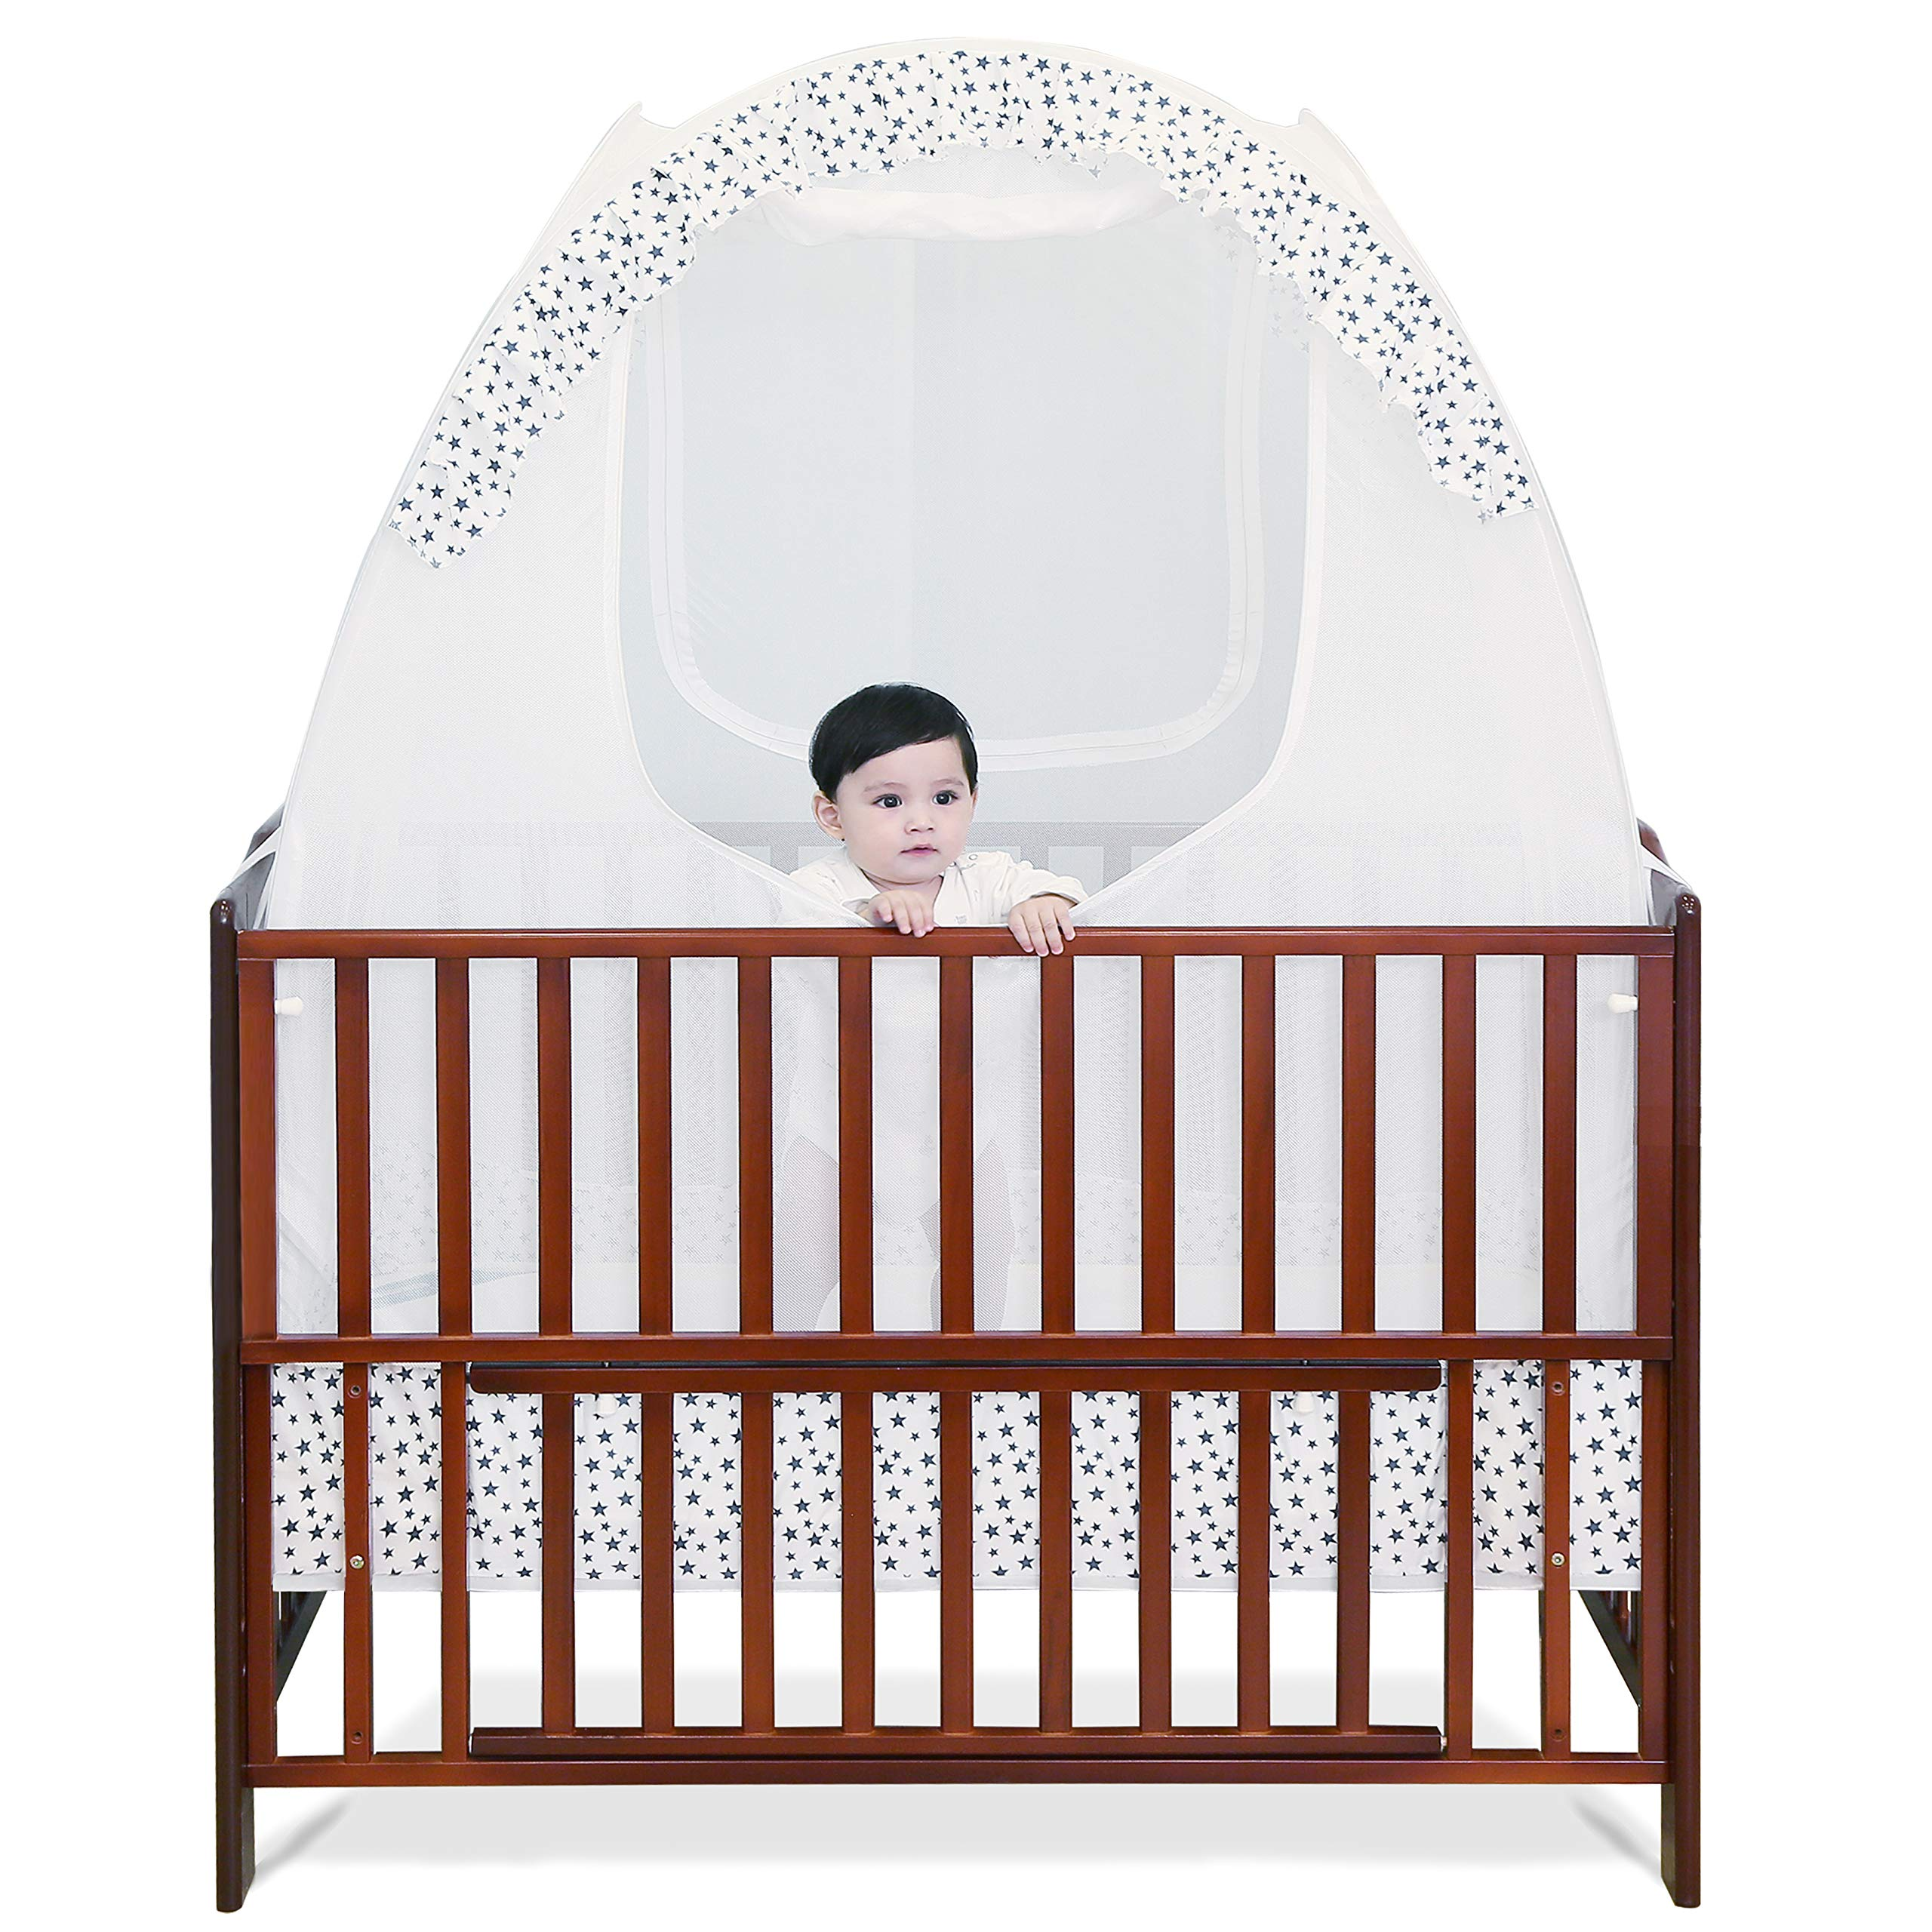 SDADI Baby Crib Safety Tent Pop Up Mosquito Net with Baby Monitor Hang Ribbon,Toddler Bed Canopy Netting Cover |Star WLCN01S by SDADI (Image #1)